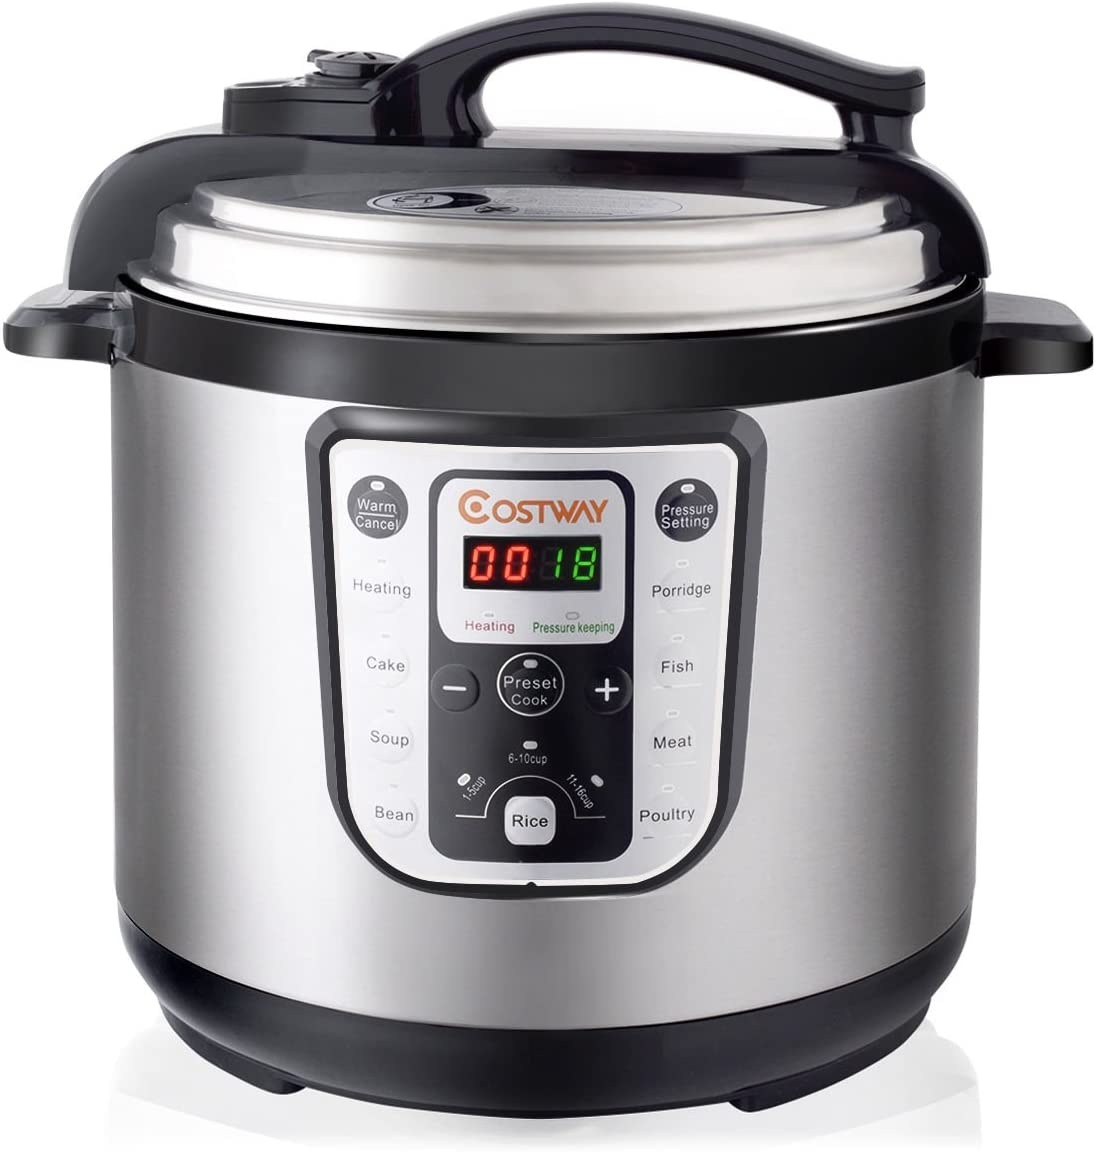 1250W 8 Quart Electric Pressure Cooker Programmable Multi-Use Stainless Steel